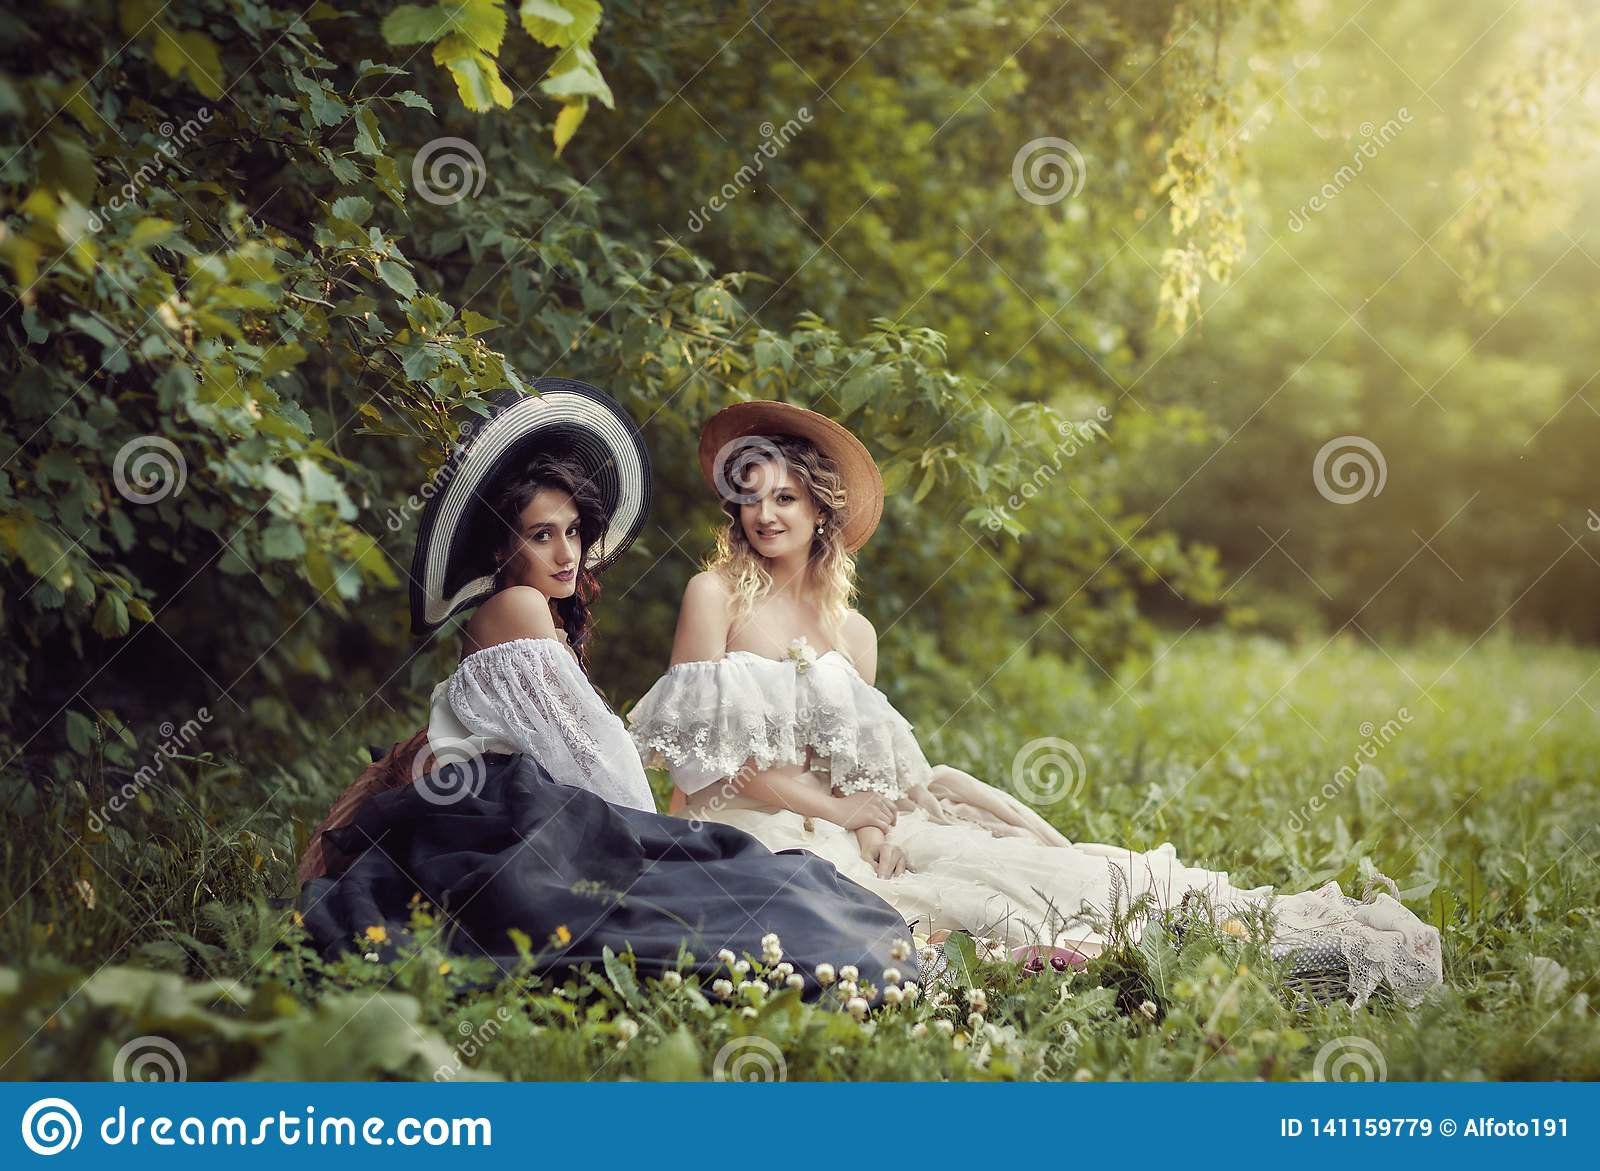 Two girls in vintage clothes and hats